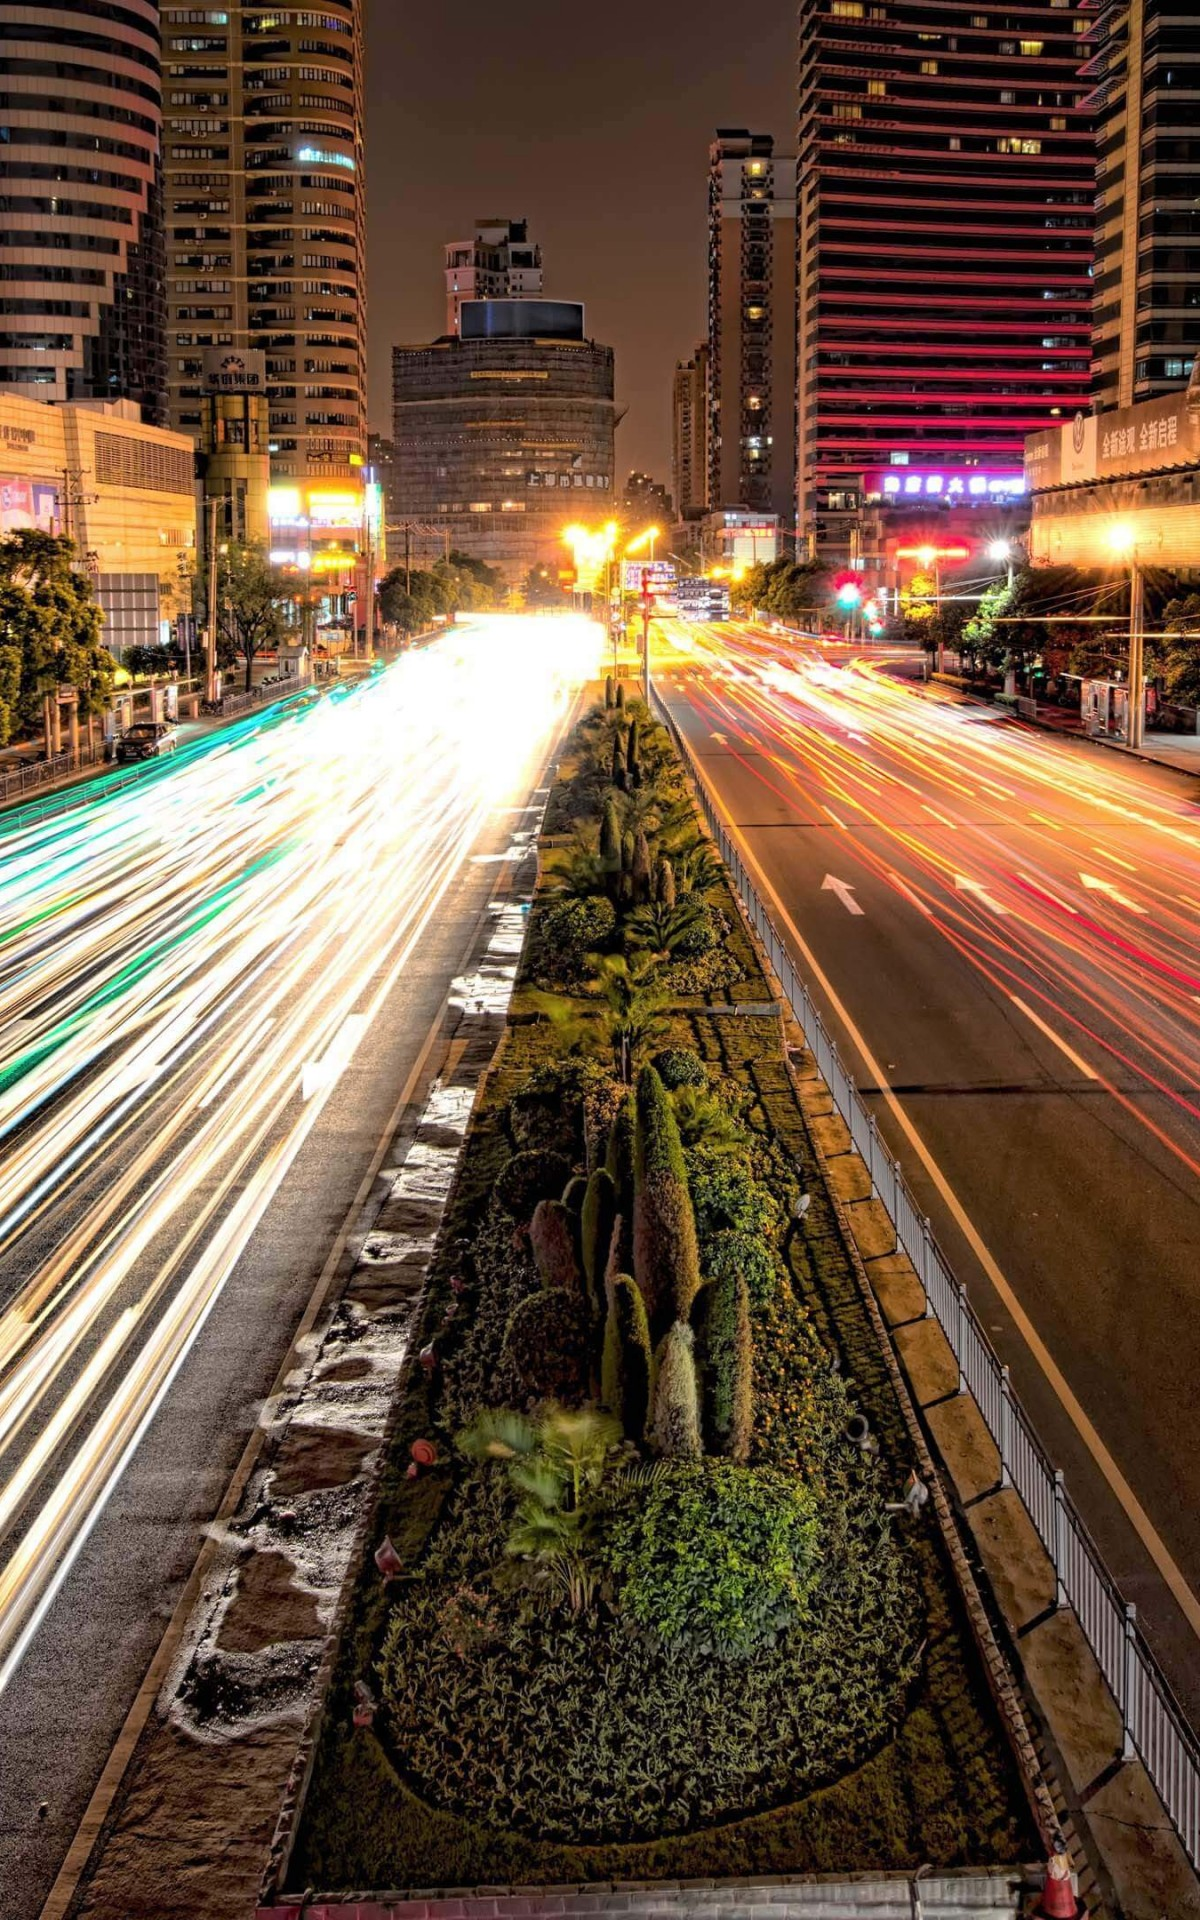 Busy Road in Shanghai at Night Wallpaper for Amazon Kindle Fire HDX